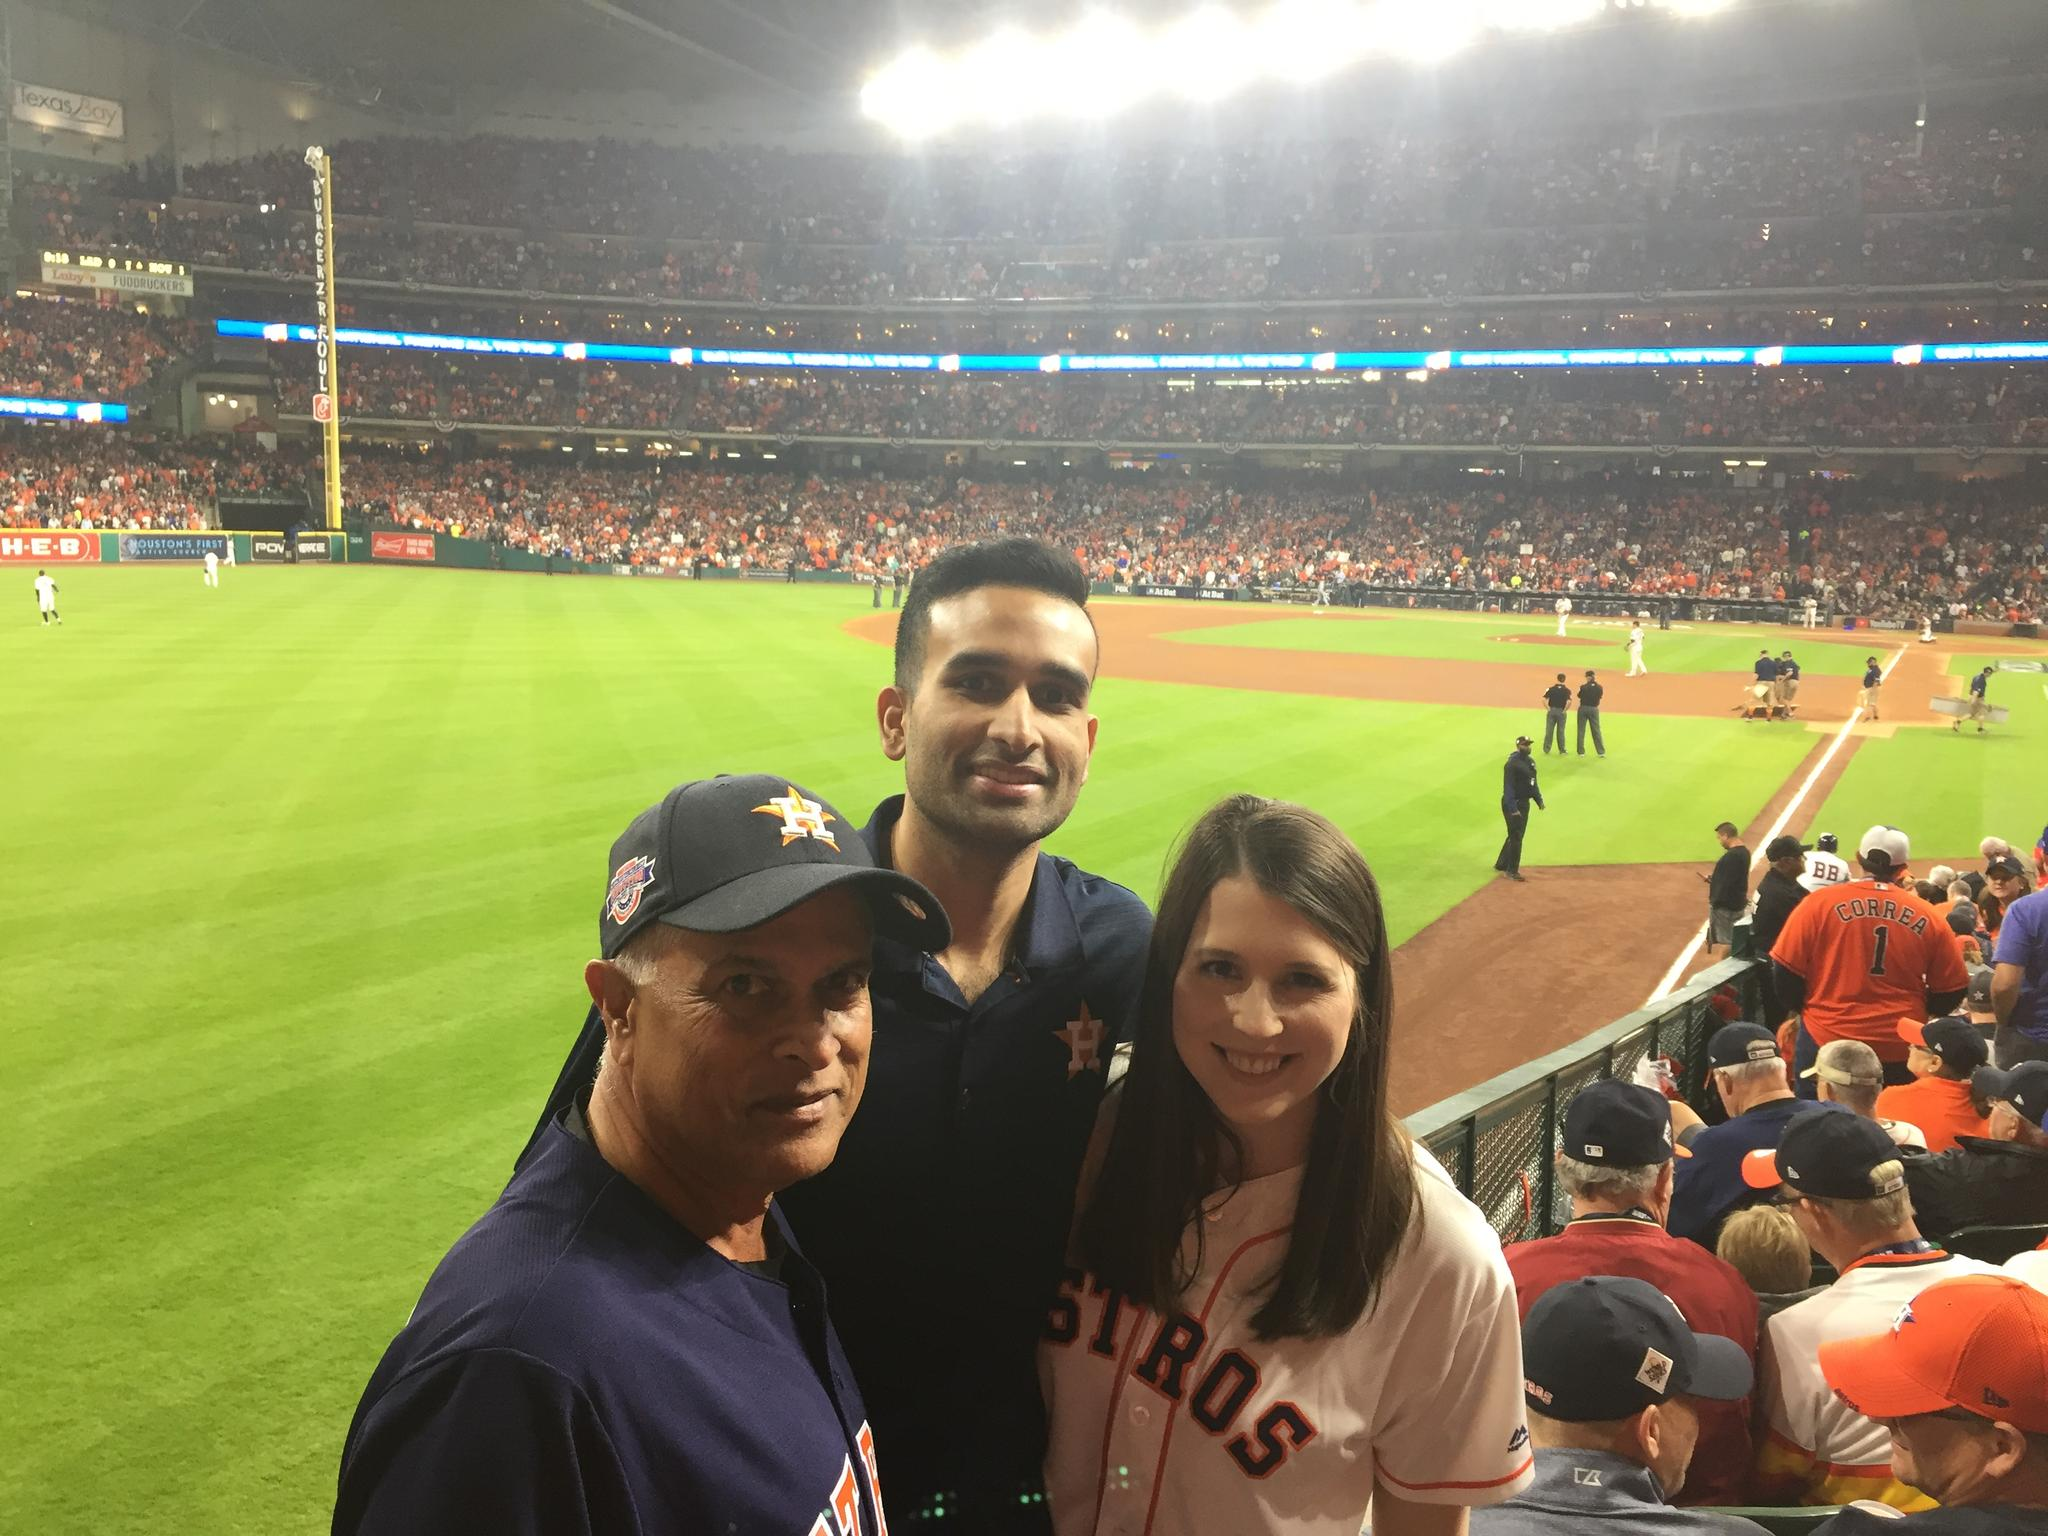 Bonding over Astros baseball is even more fun during the World Series!